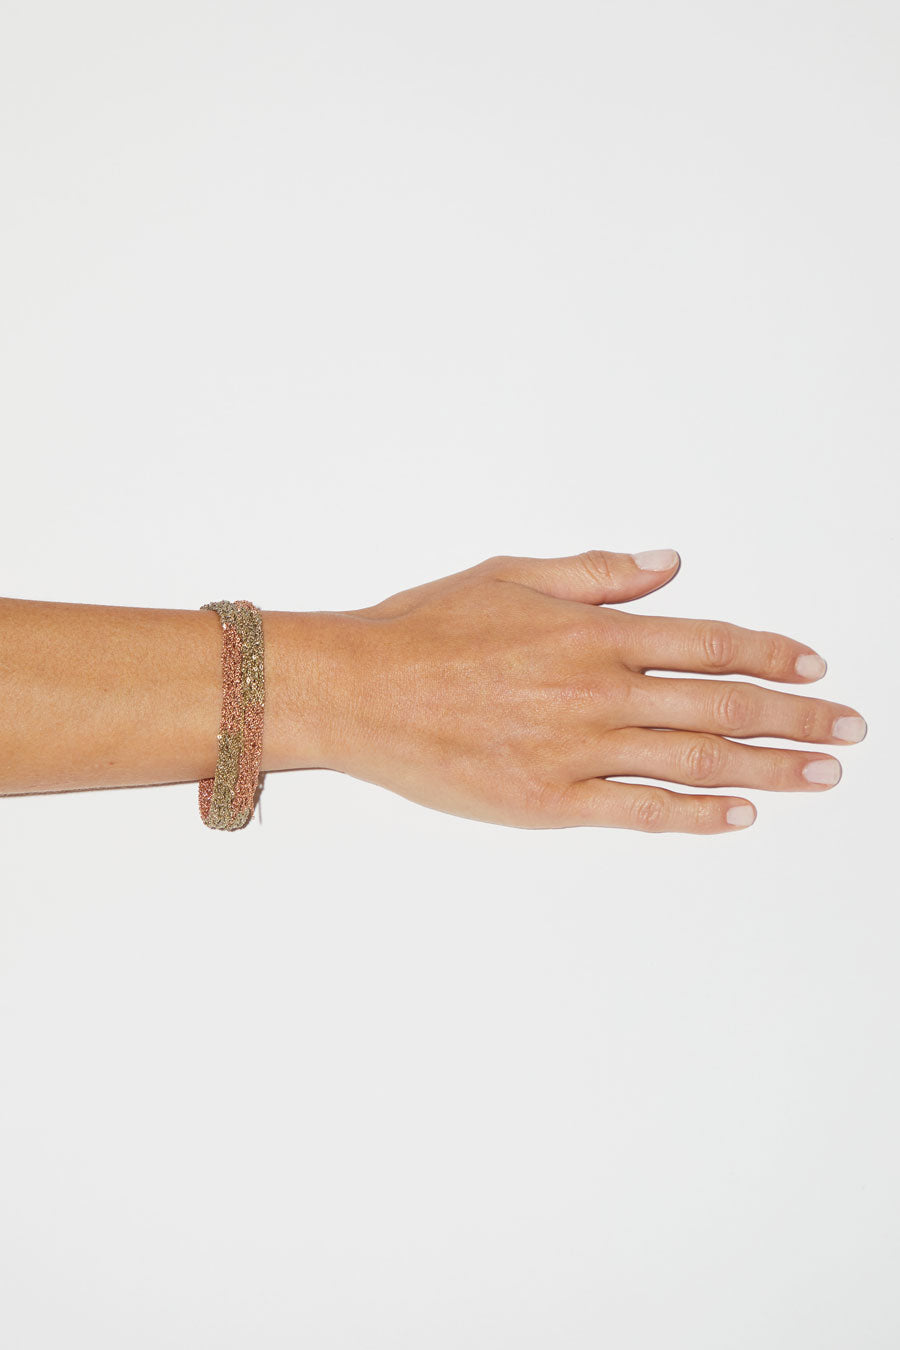 Arielle de Pinto Blaze Bracelet in Haze and Rose Gold